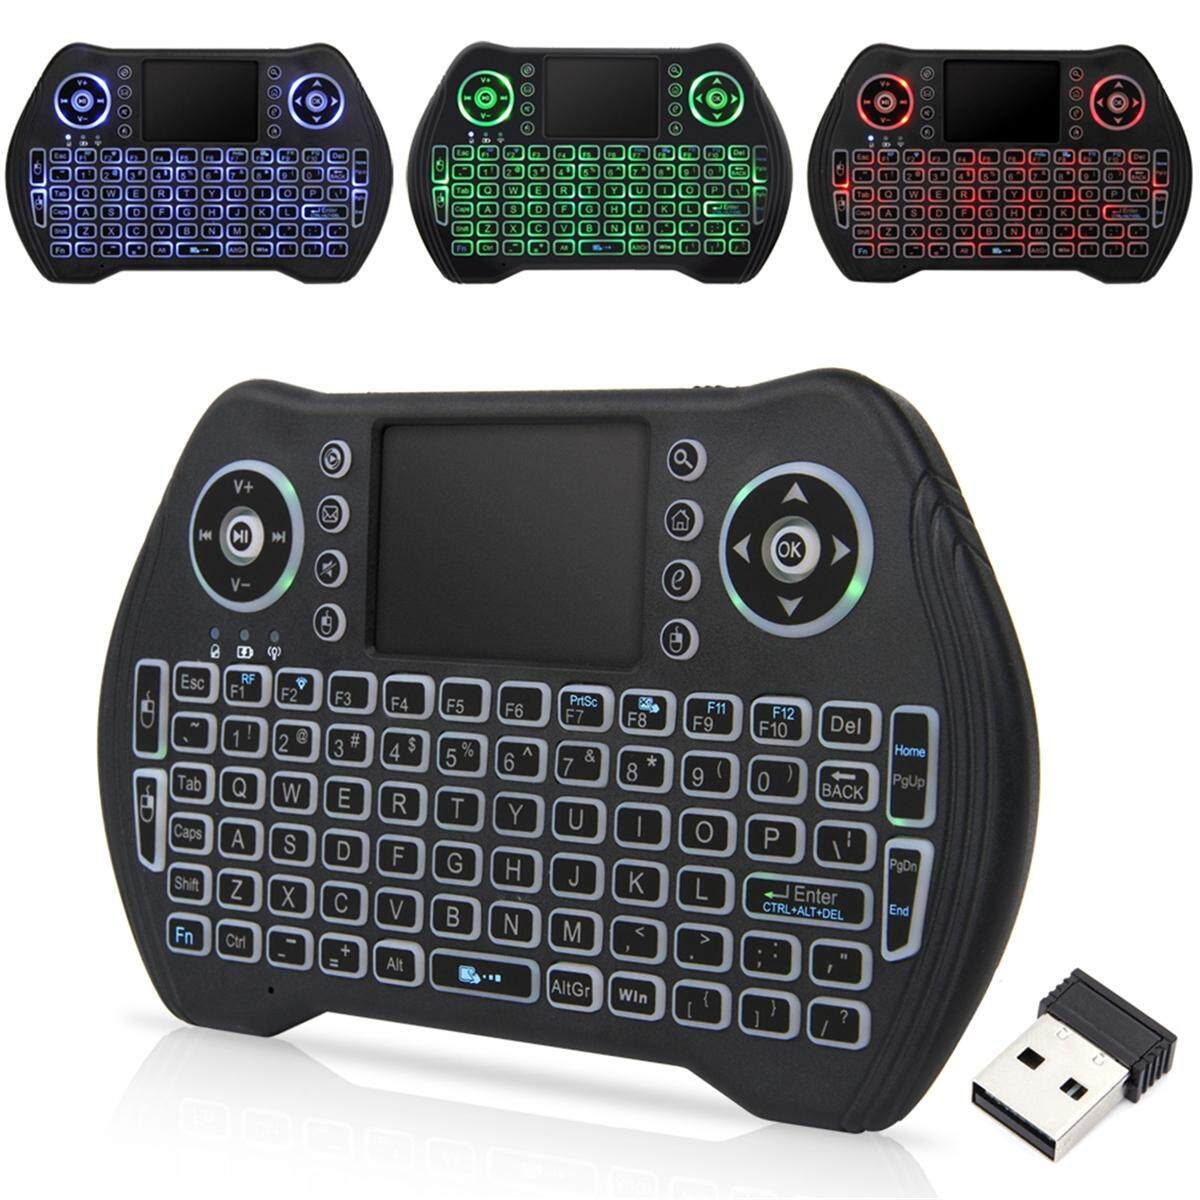 Hand-Hold Wireless Bluetooth Backlight Keyboard For Tablet By Nimbler.